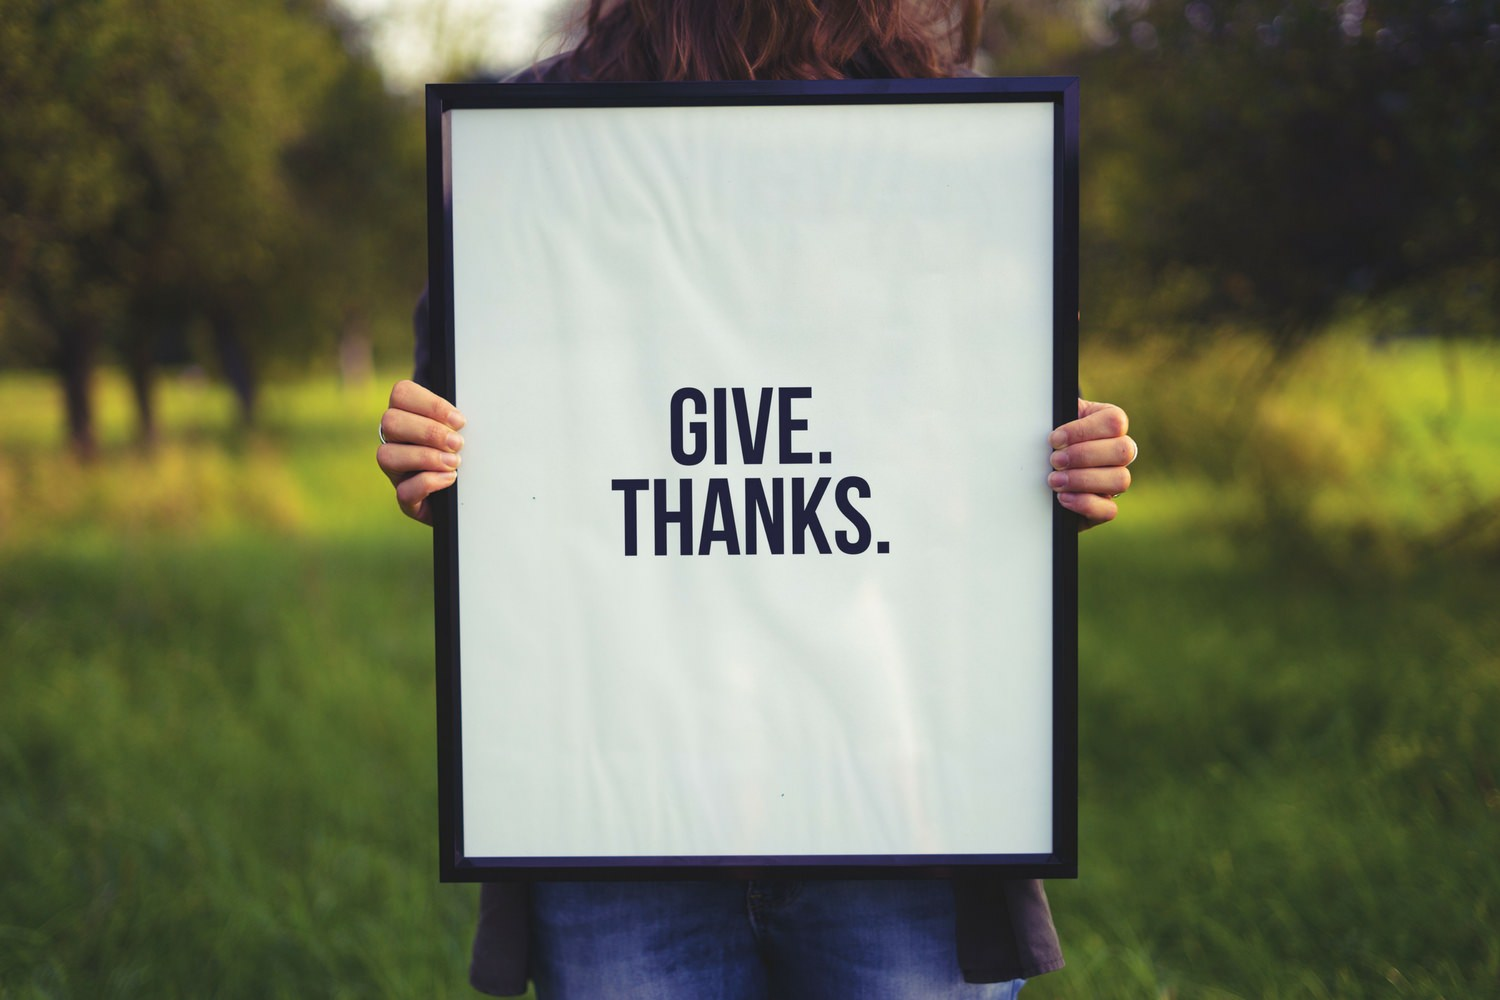 How to develop an attitude of gratitude through times of struggle and hardship.